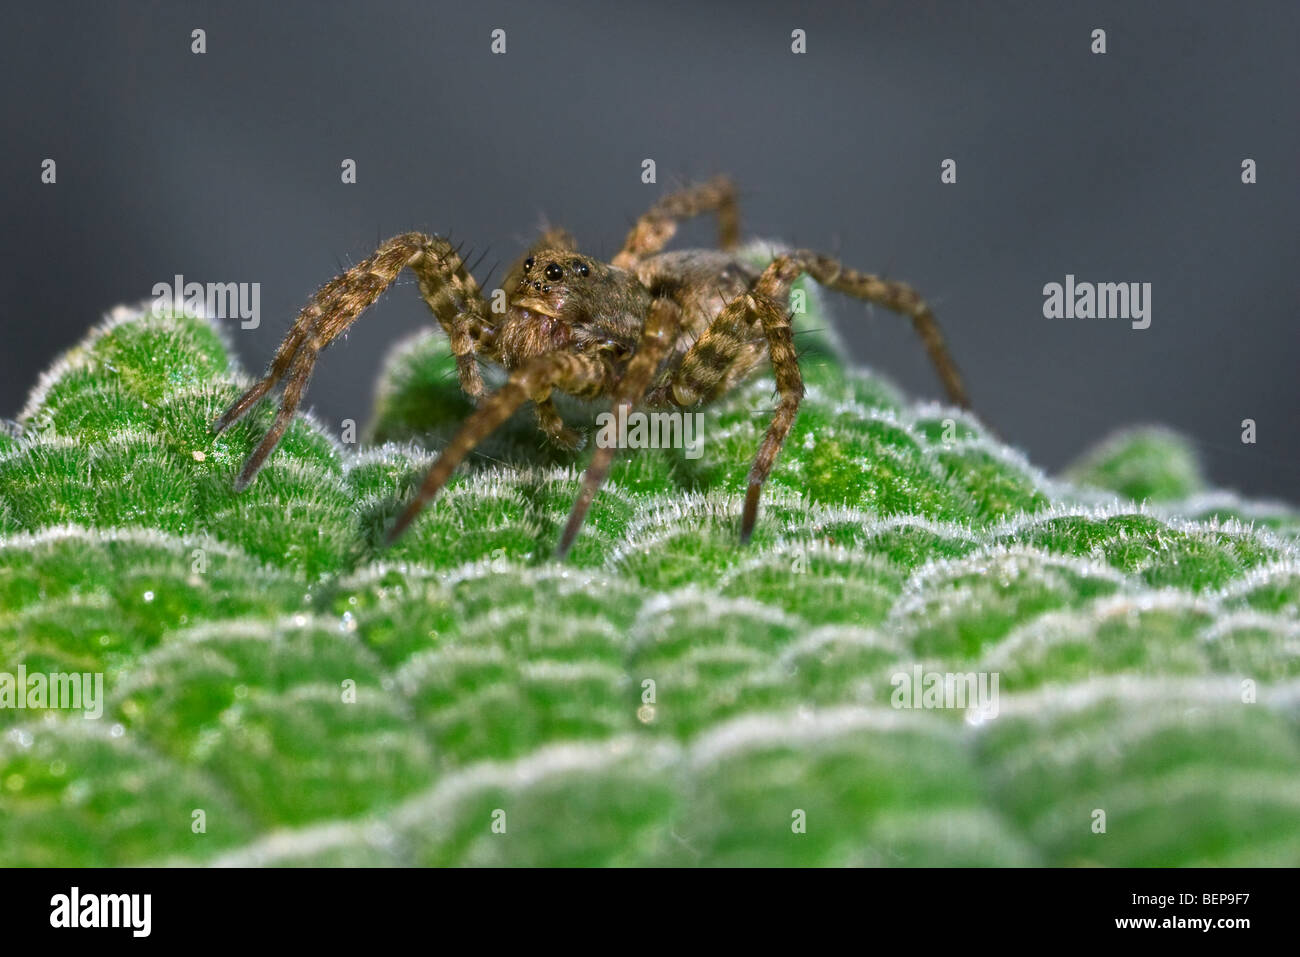 Wolf spider (Pardosa amentata) on leaf, Belgium - Stock Image